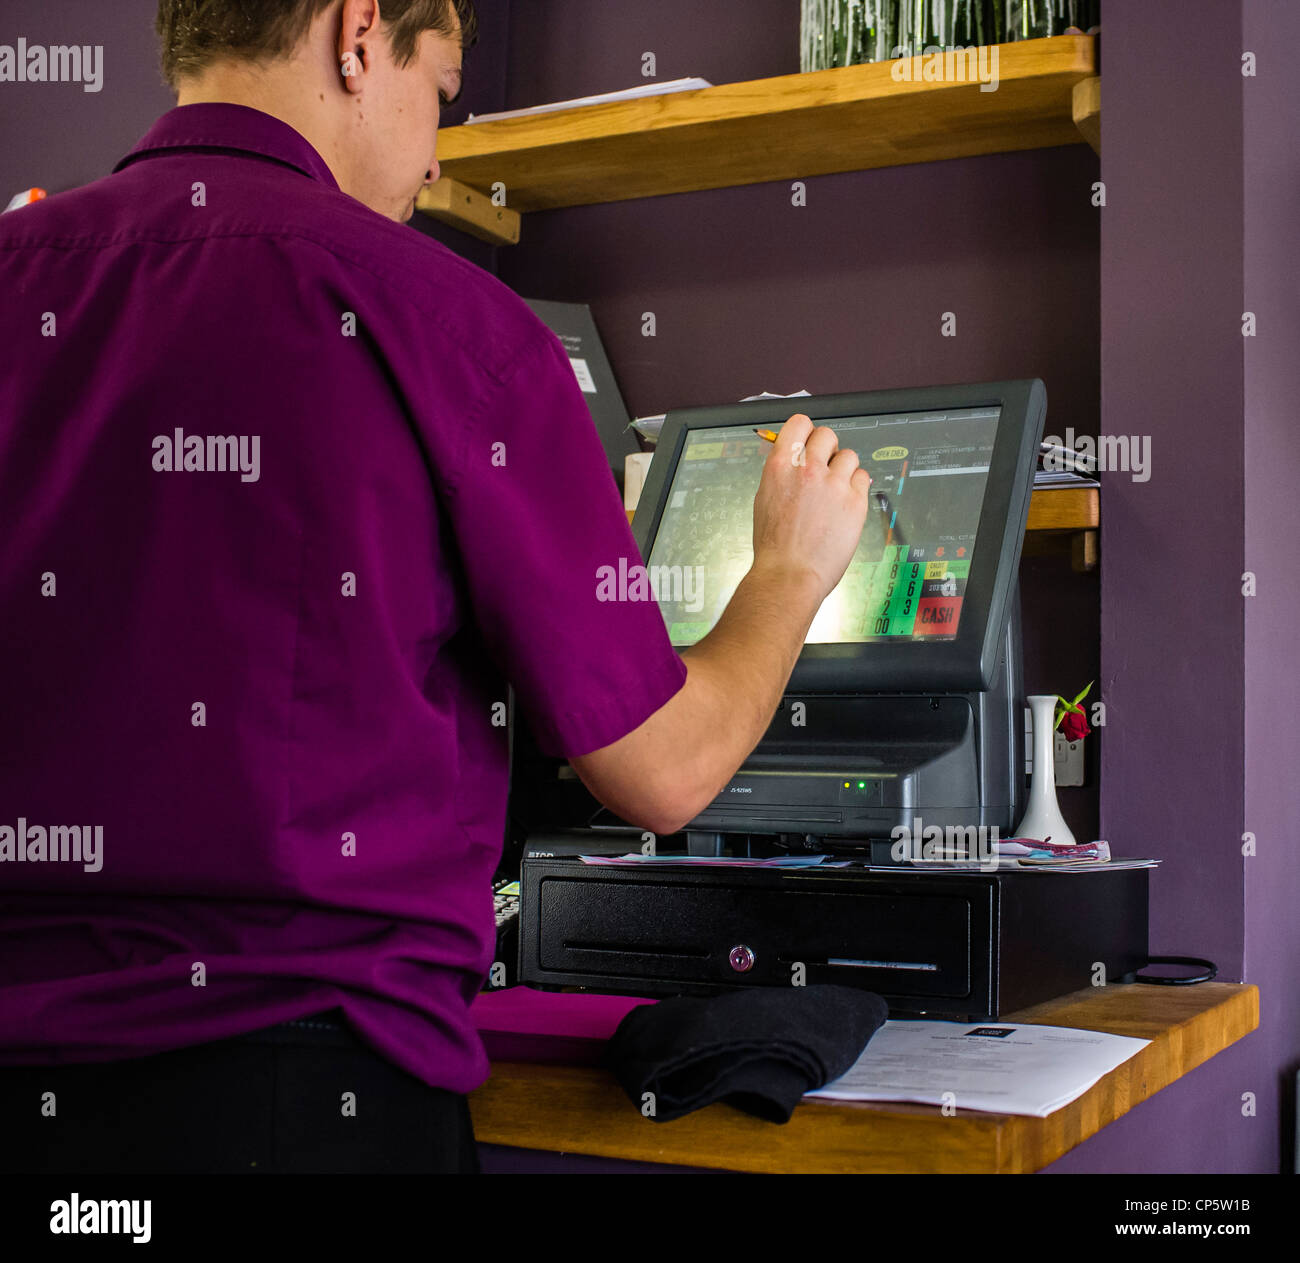 a young worker using a touch screen till to enter details of a meal in a cafe resaturant, UK - Stock Image